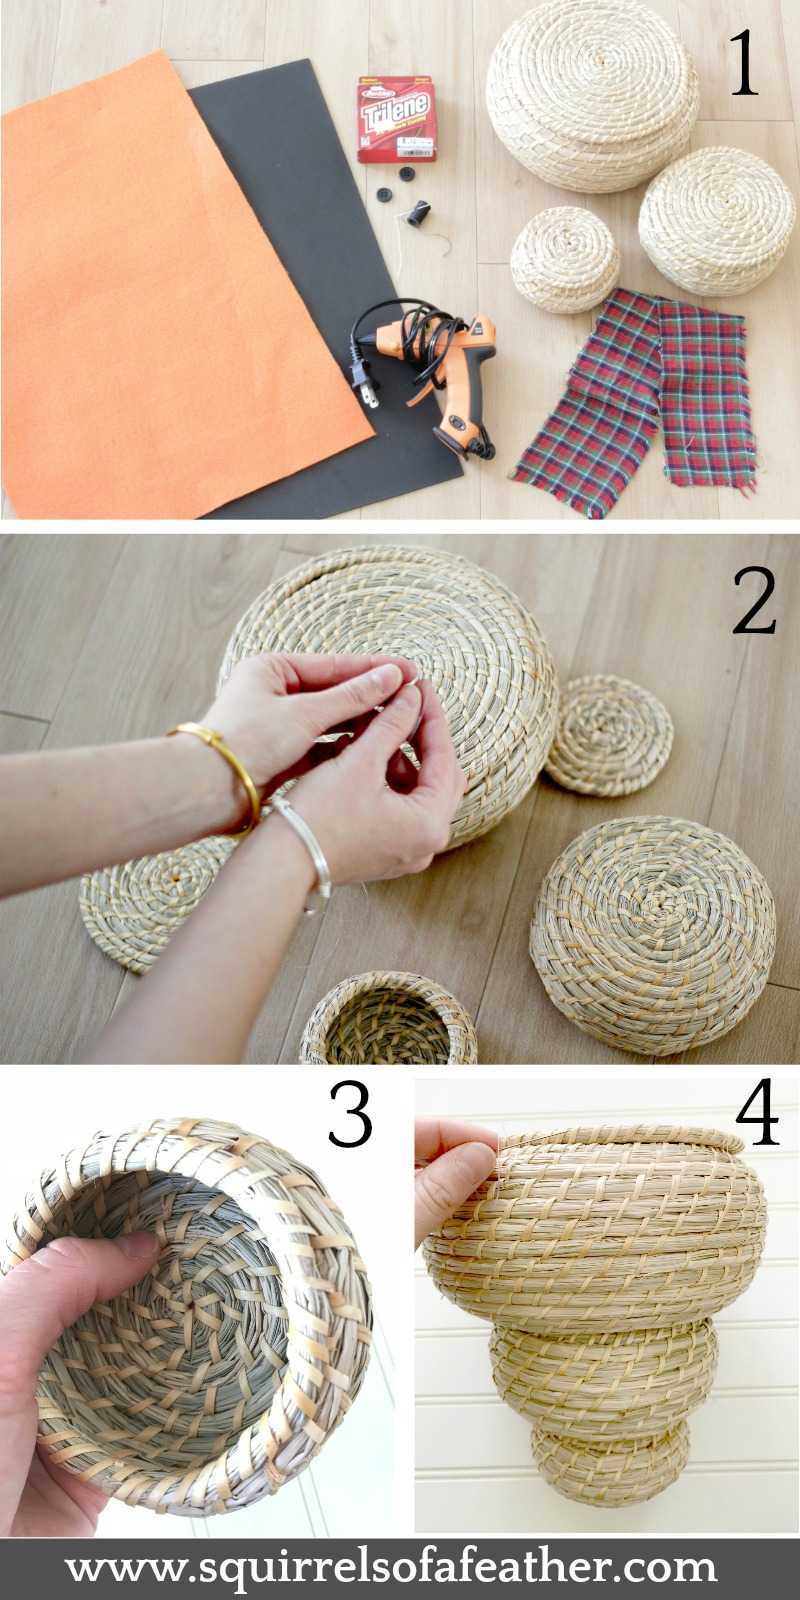 Using baskets for snowman craft